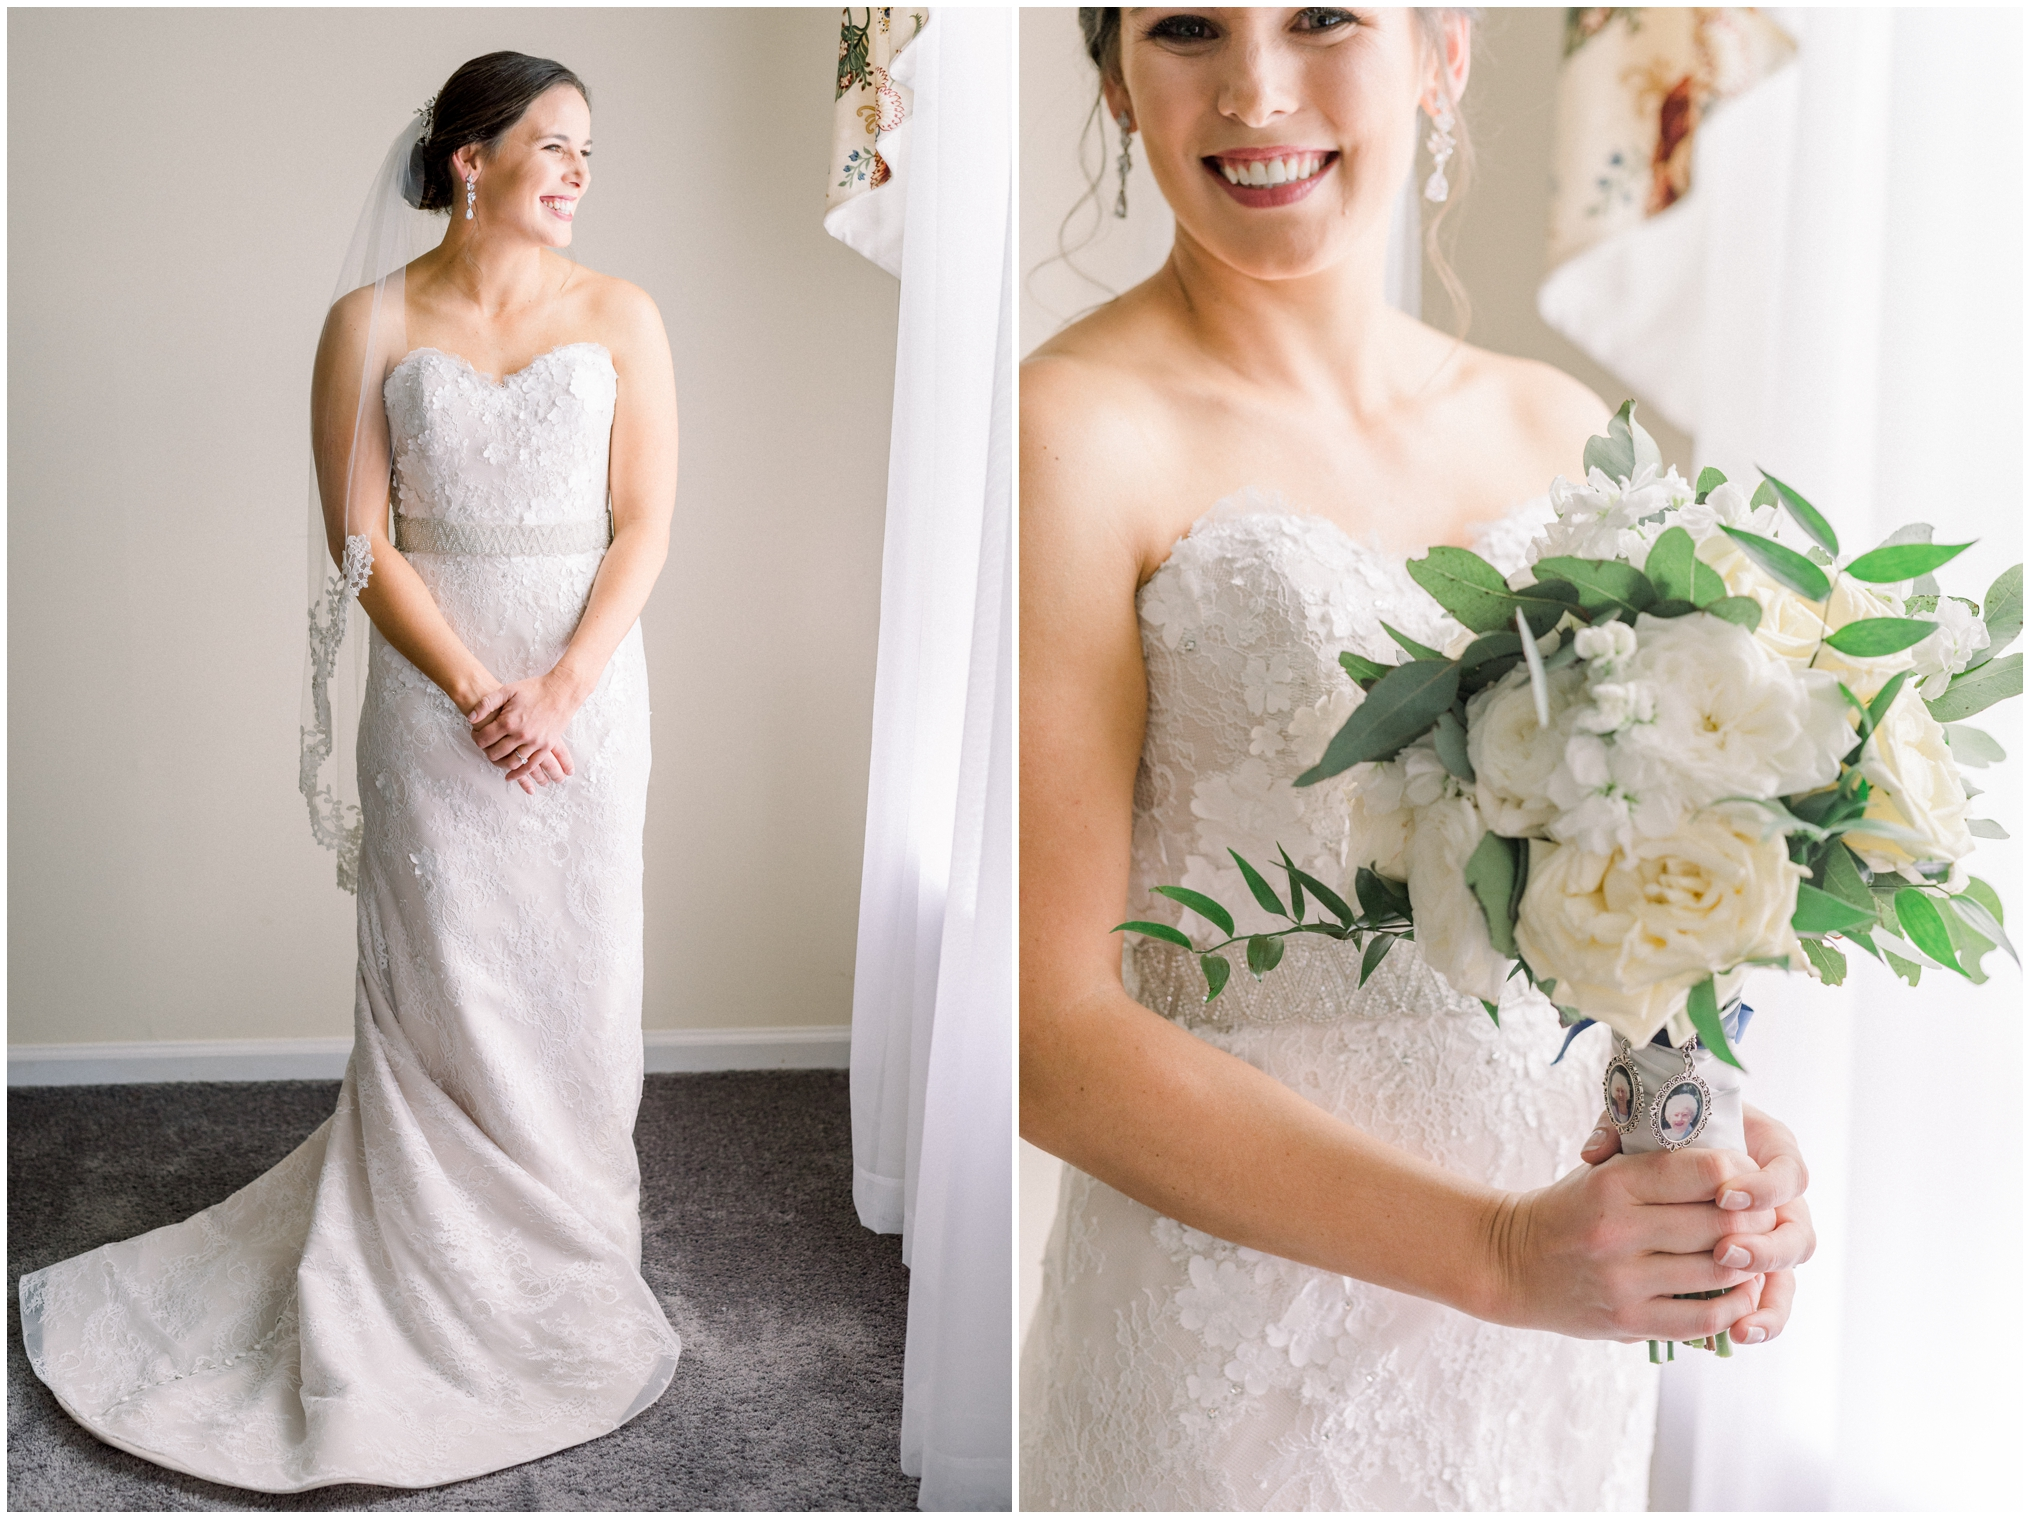 Krista Brackin Photography | April Wedding at The Carriage House at Rockwood Park_0021.jpg